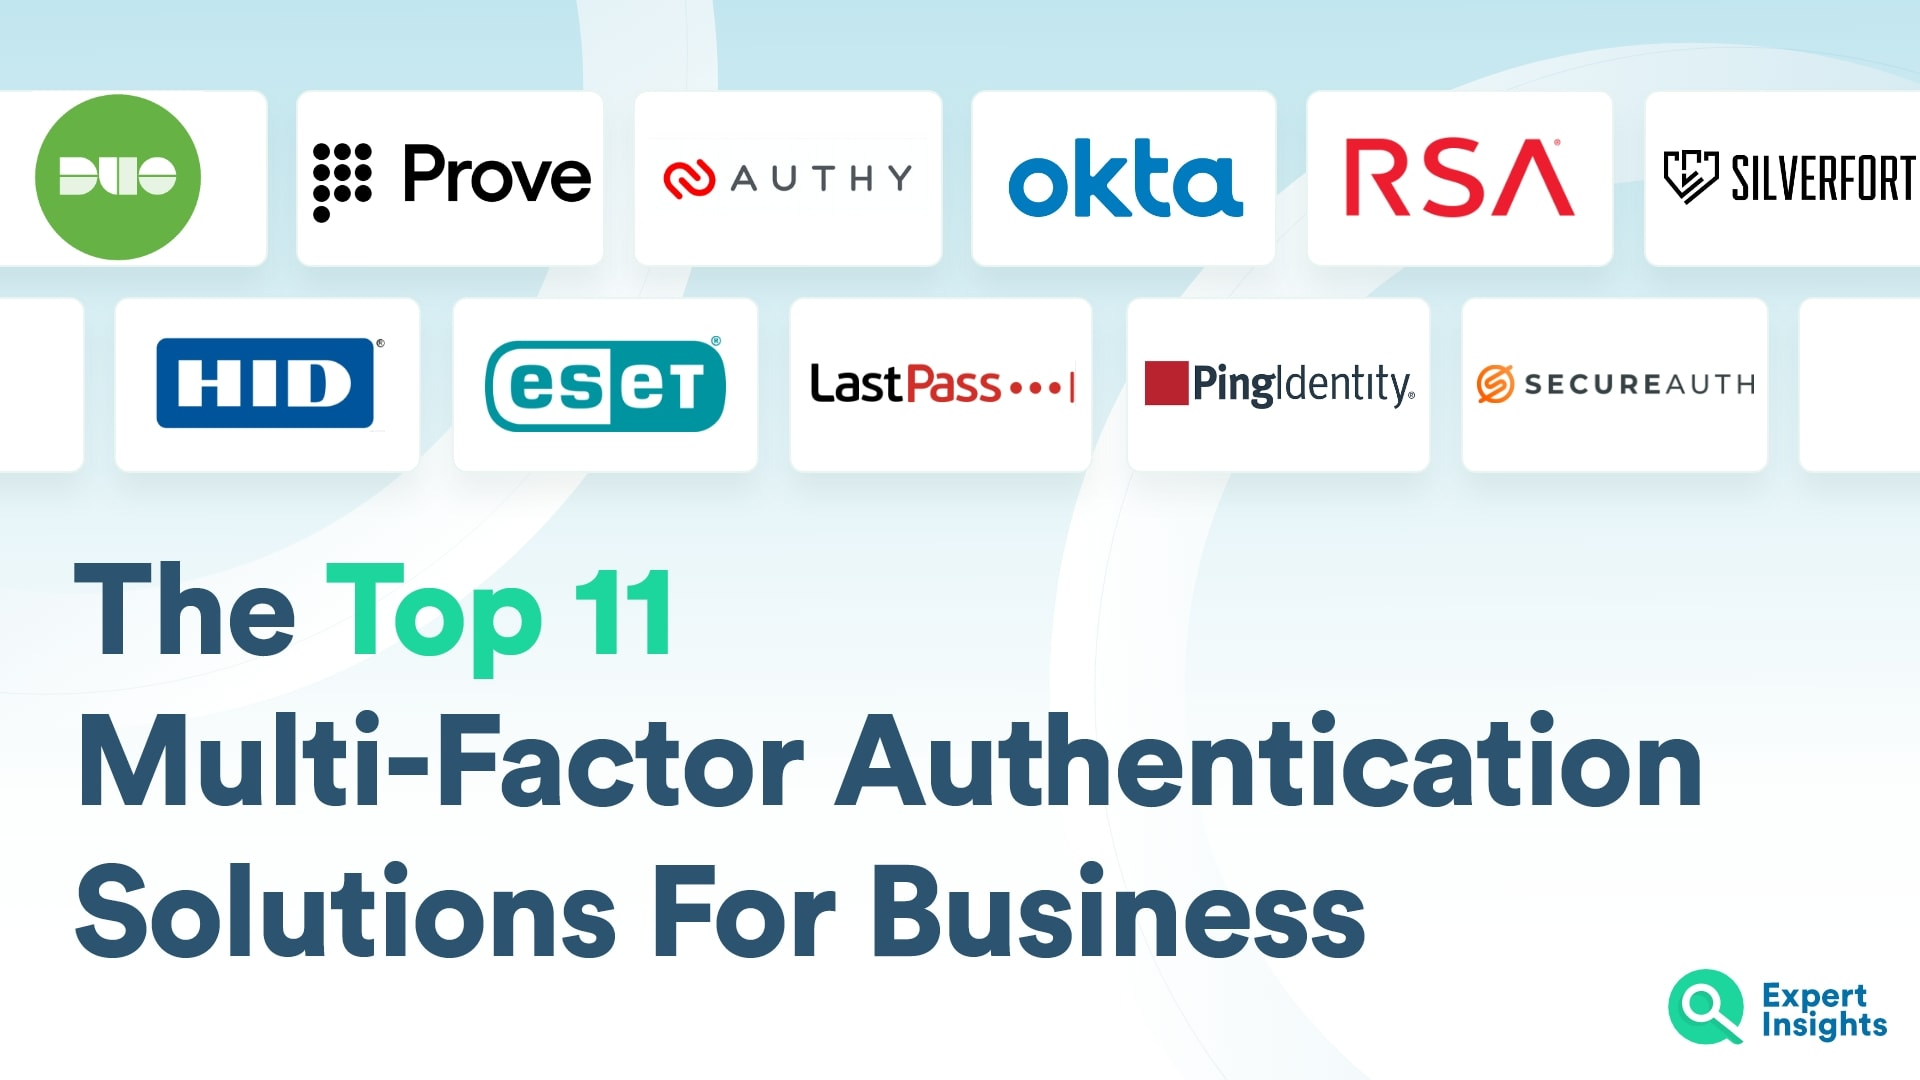 Top 11 MFA Solutions For Business - Expert Insights